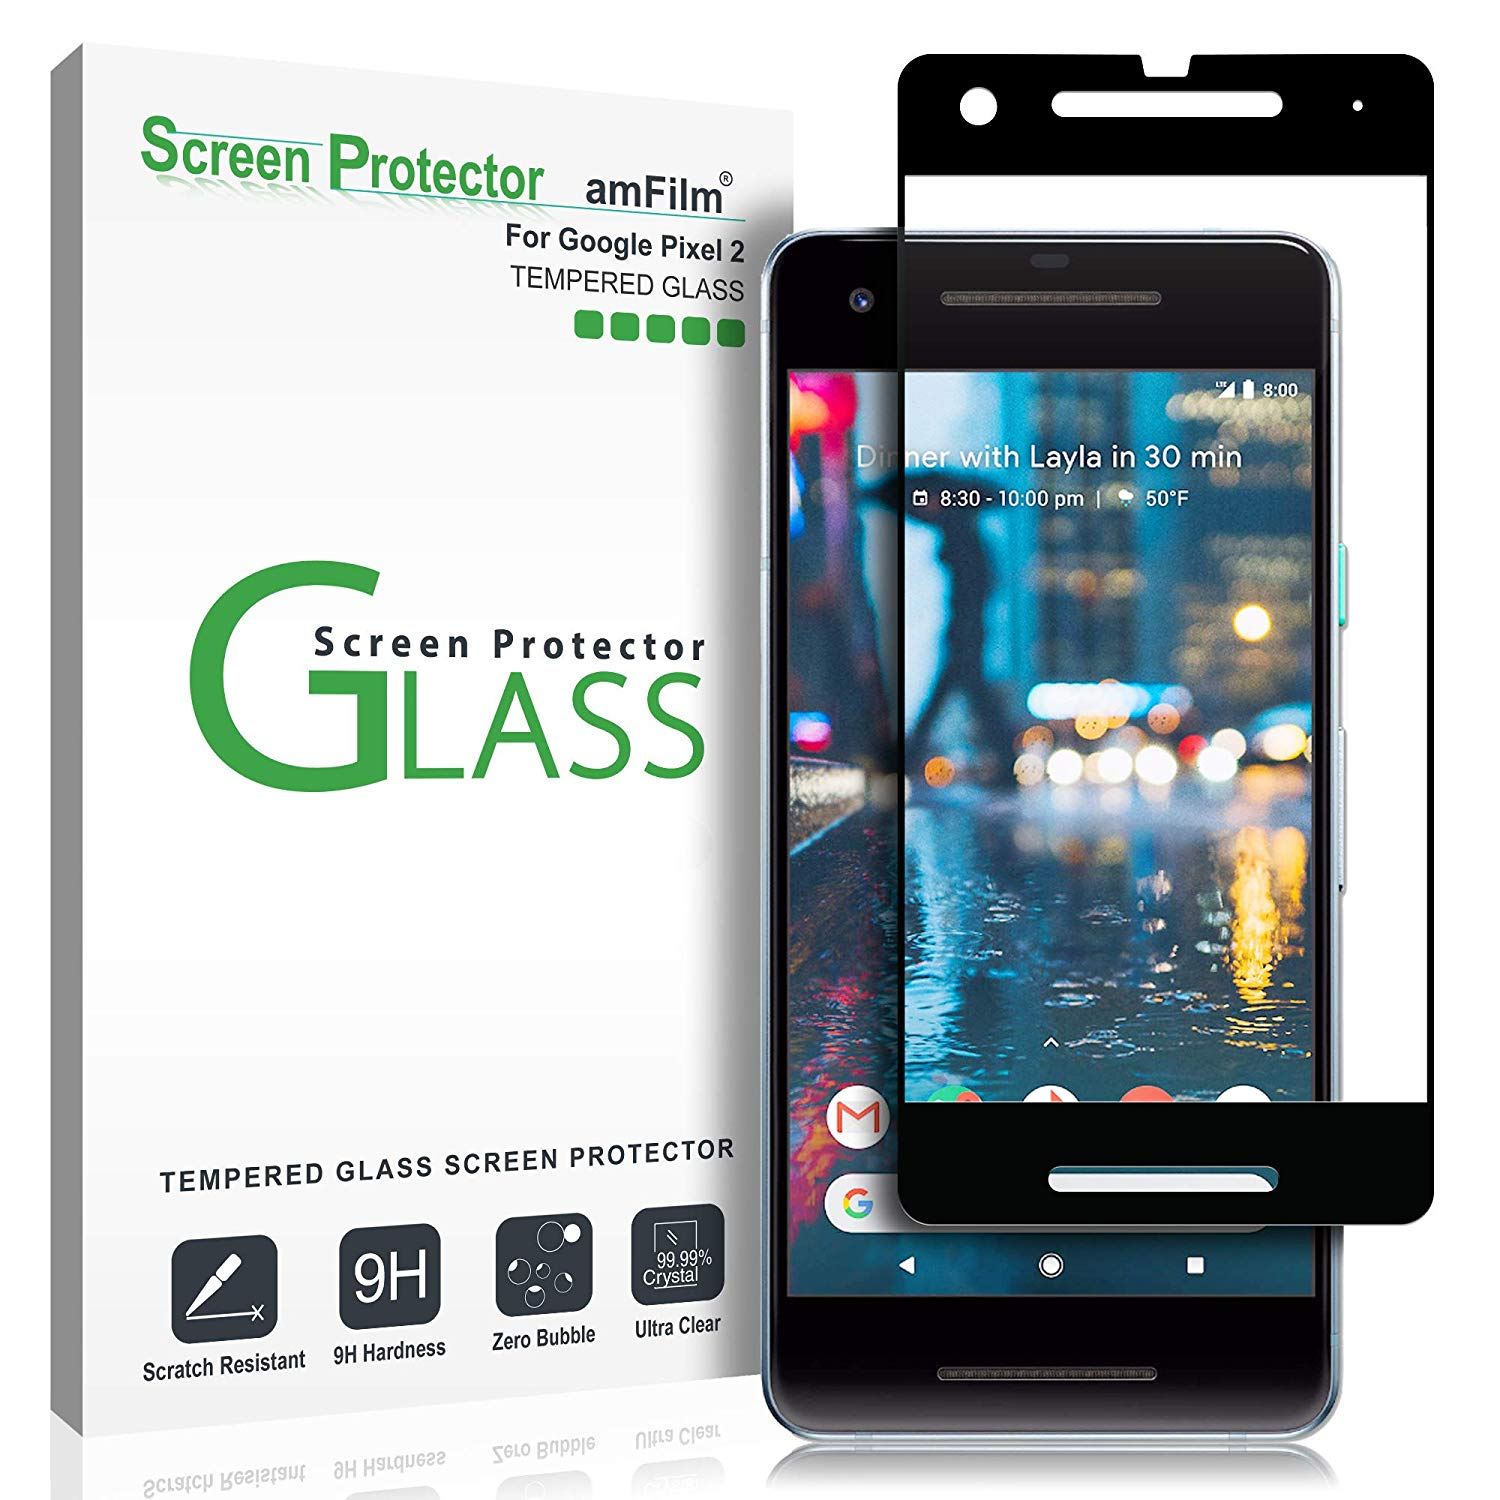 pixel-2-amfilm-tempered-glass-press.jpg